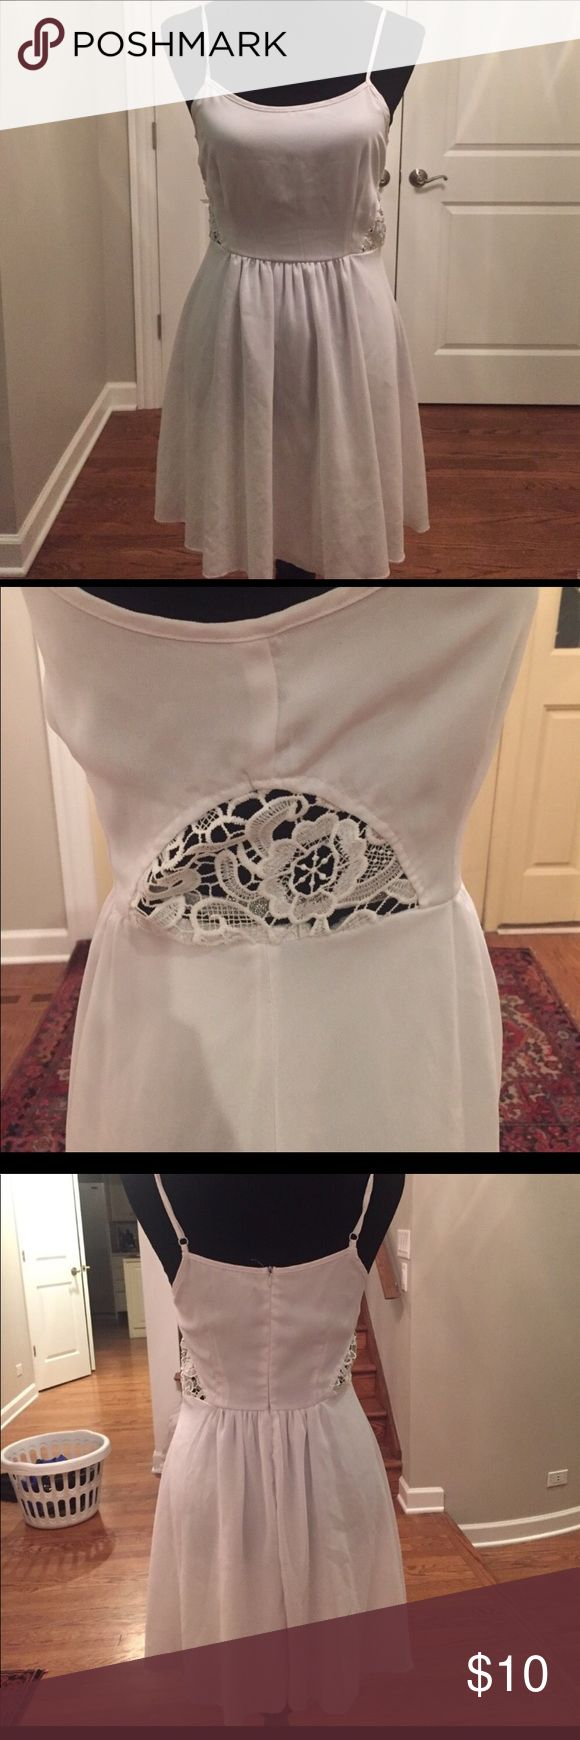 Missguided white dress Flowy white dress perfect for summer! Super flattering with pretty lace cut out on side. Only worn a few times 😊 Missguided Dresses Mini